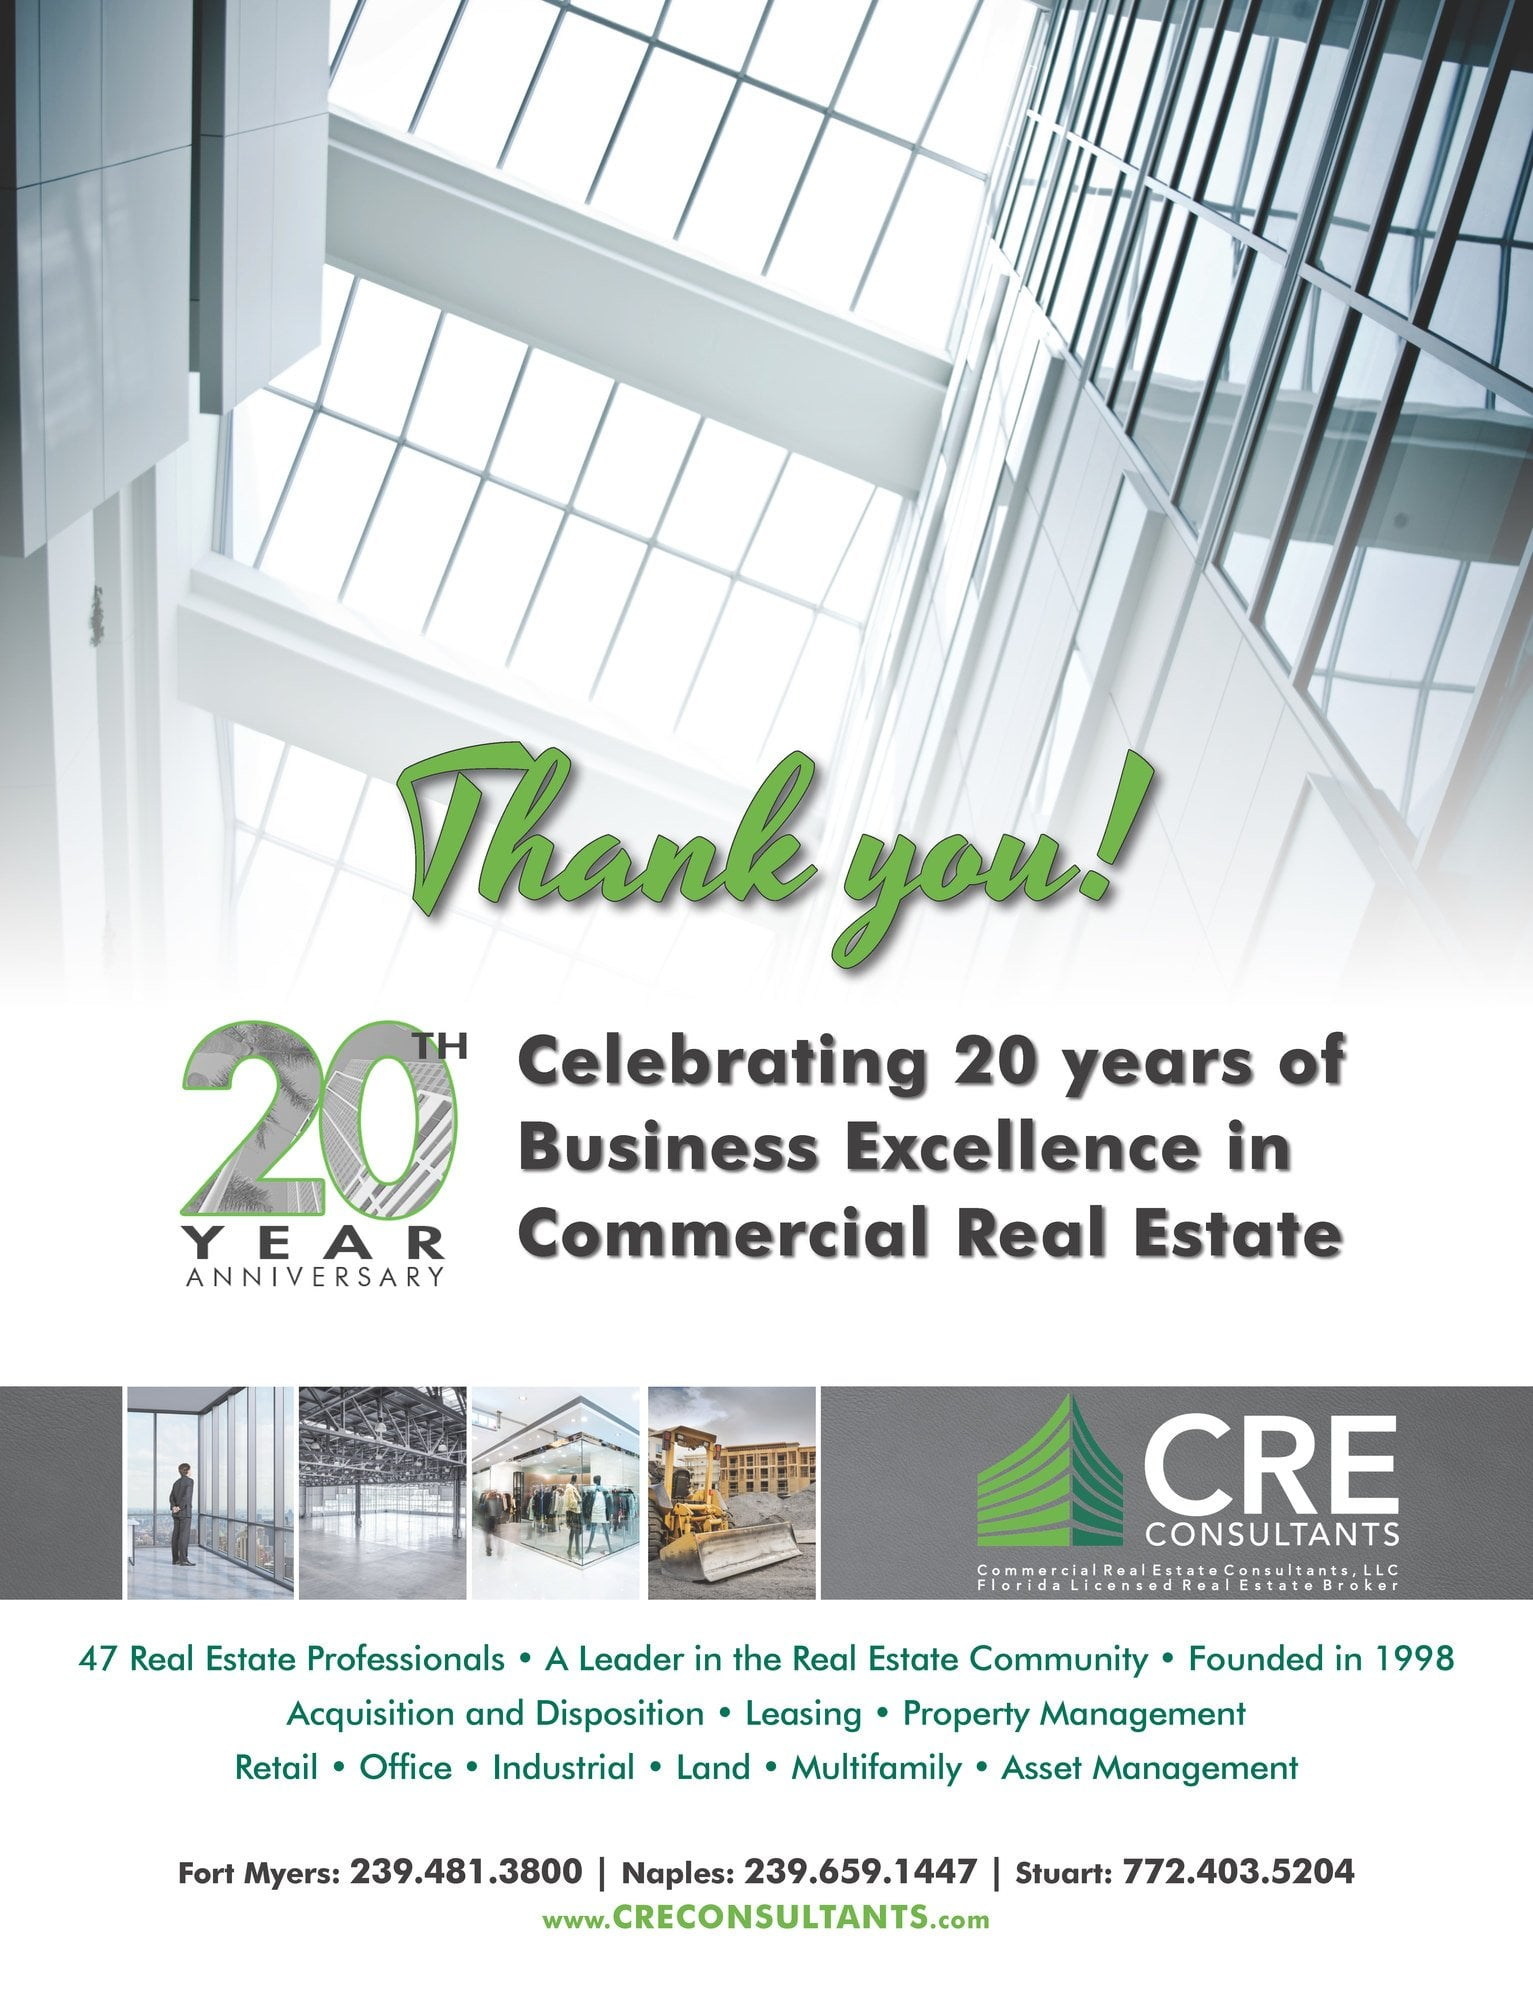 CRE Consultants Celebrates 20 Years in Business - CRE